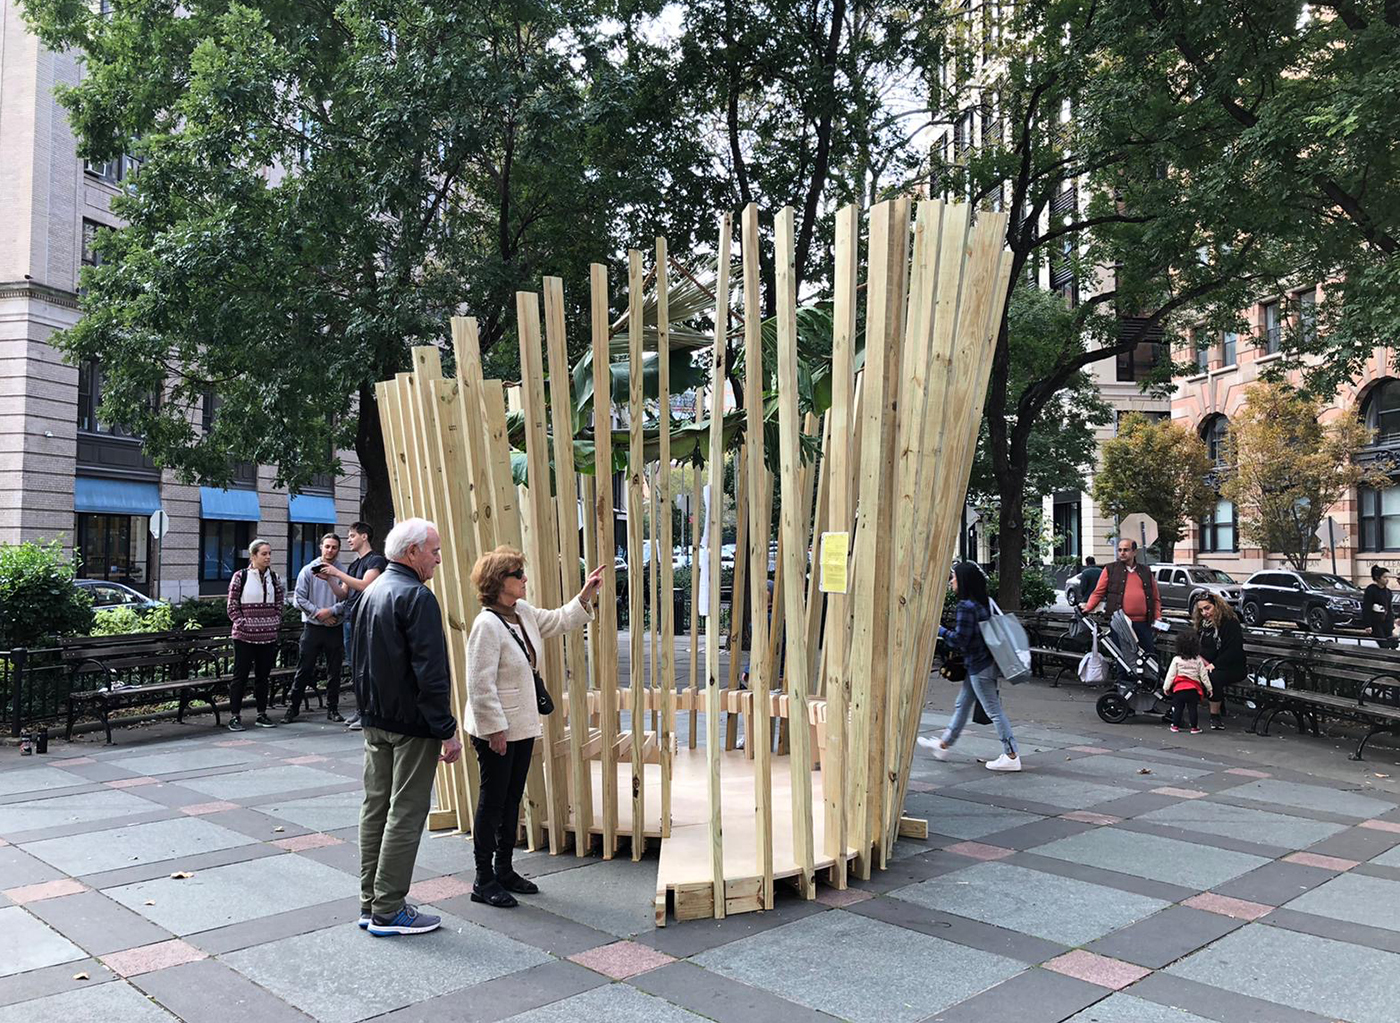 The sukkah designed by GAUD students in Tribeca Park